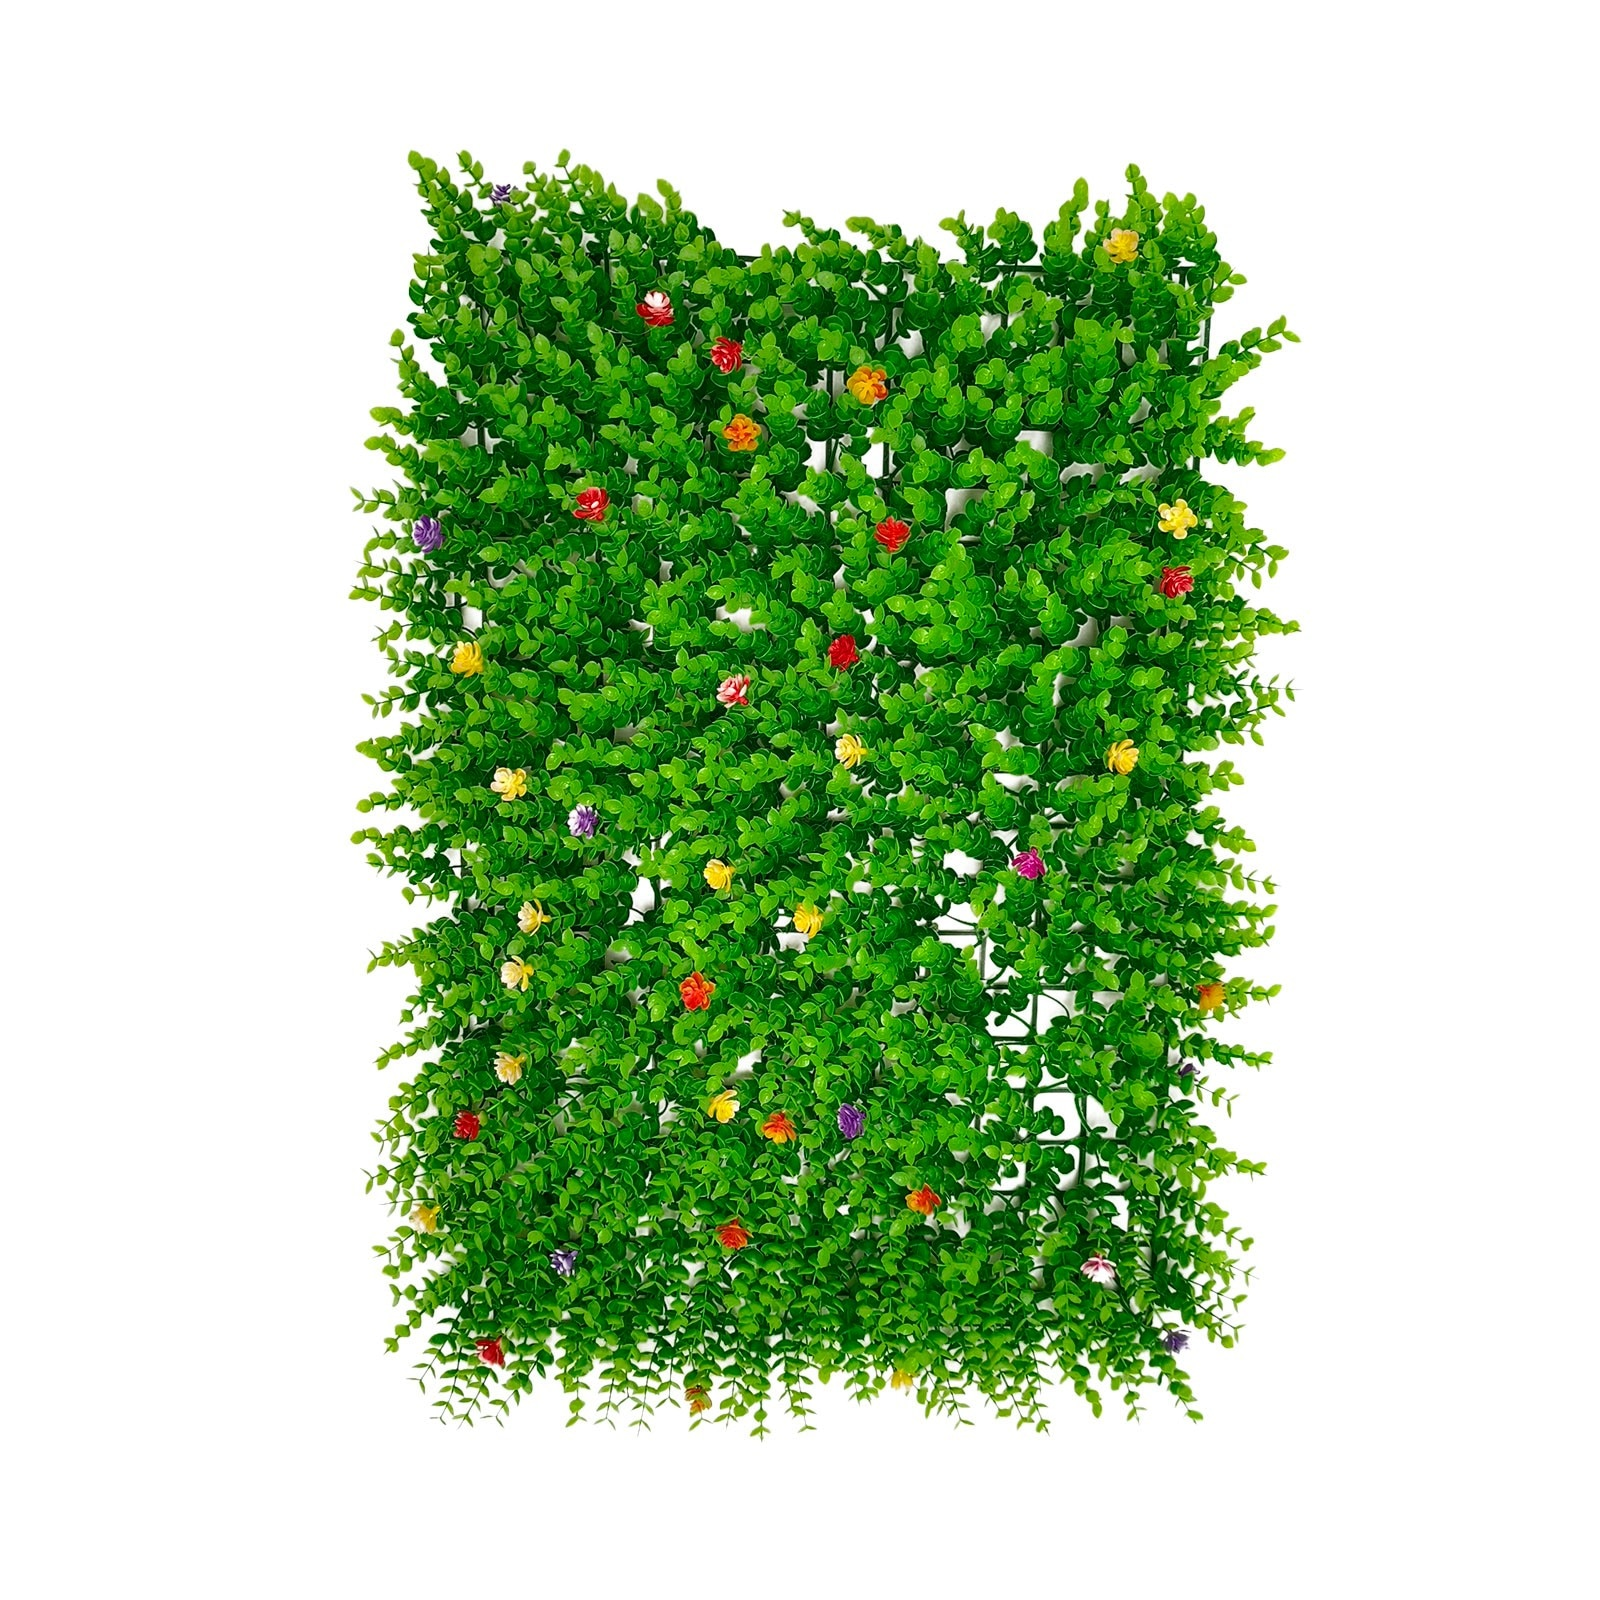 Artificial Ivy Privacy Fence Screen Artificial Hedges Fence And Faux Ivy Vine Leaf Decoration For Outdoor Garden Gardenecor #695